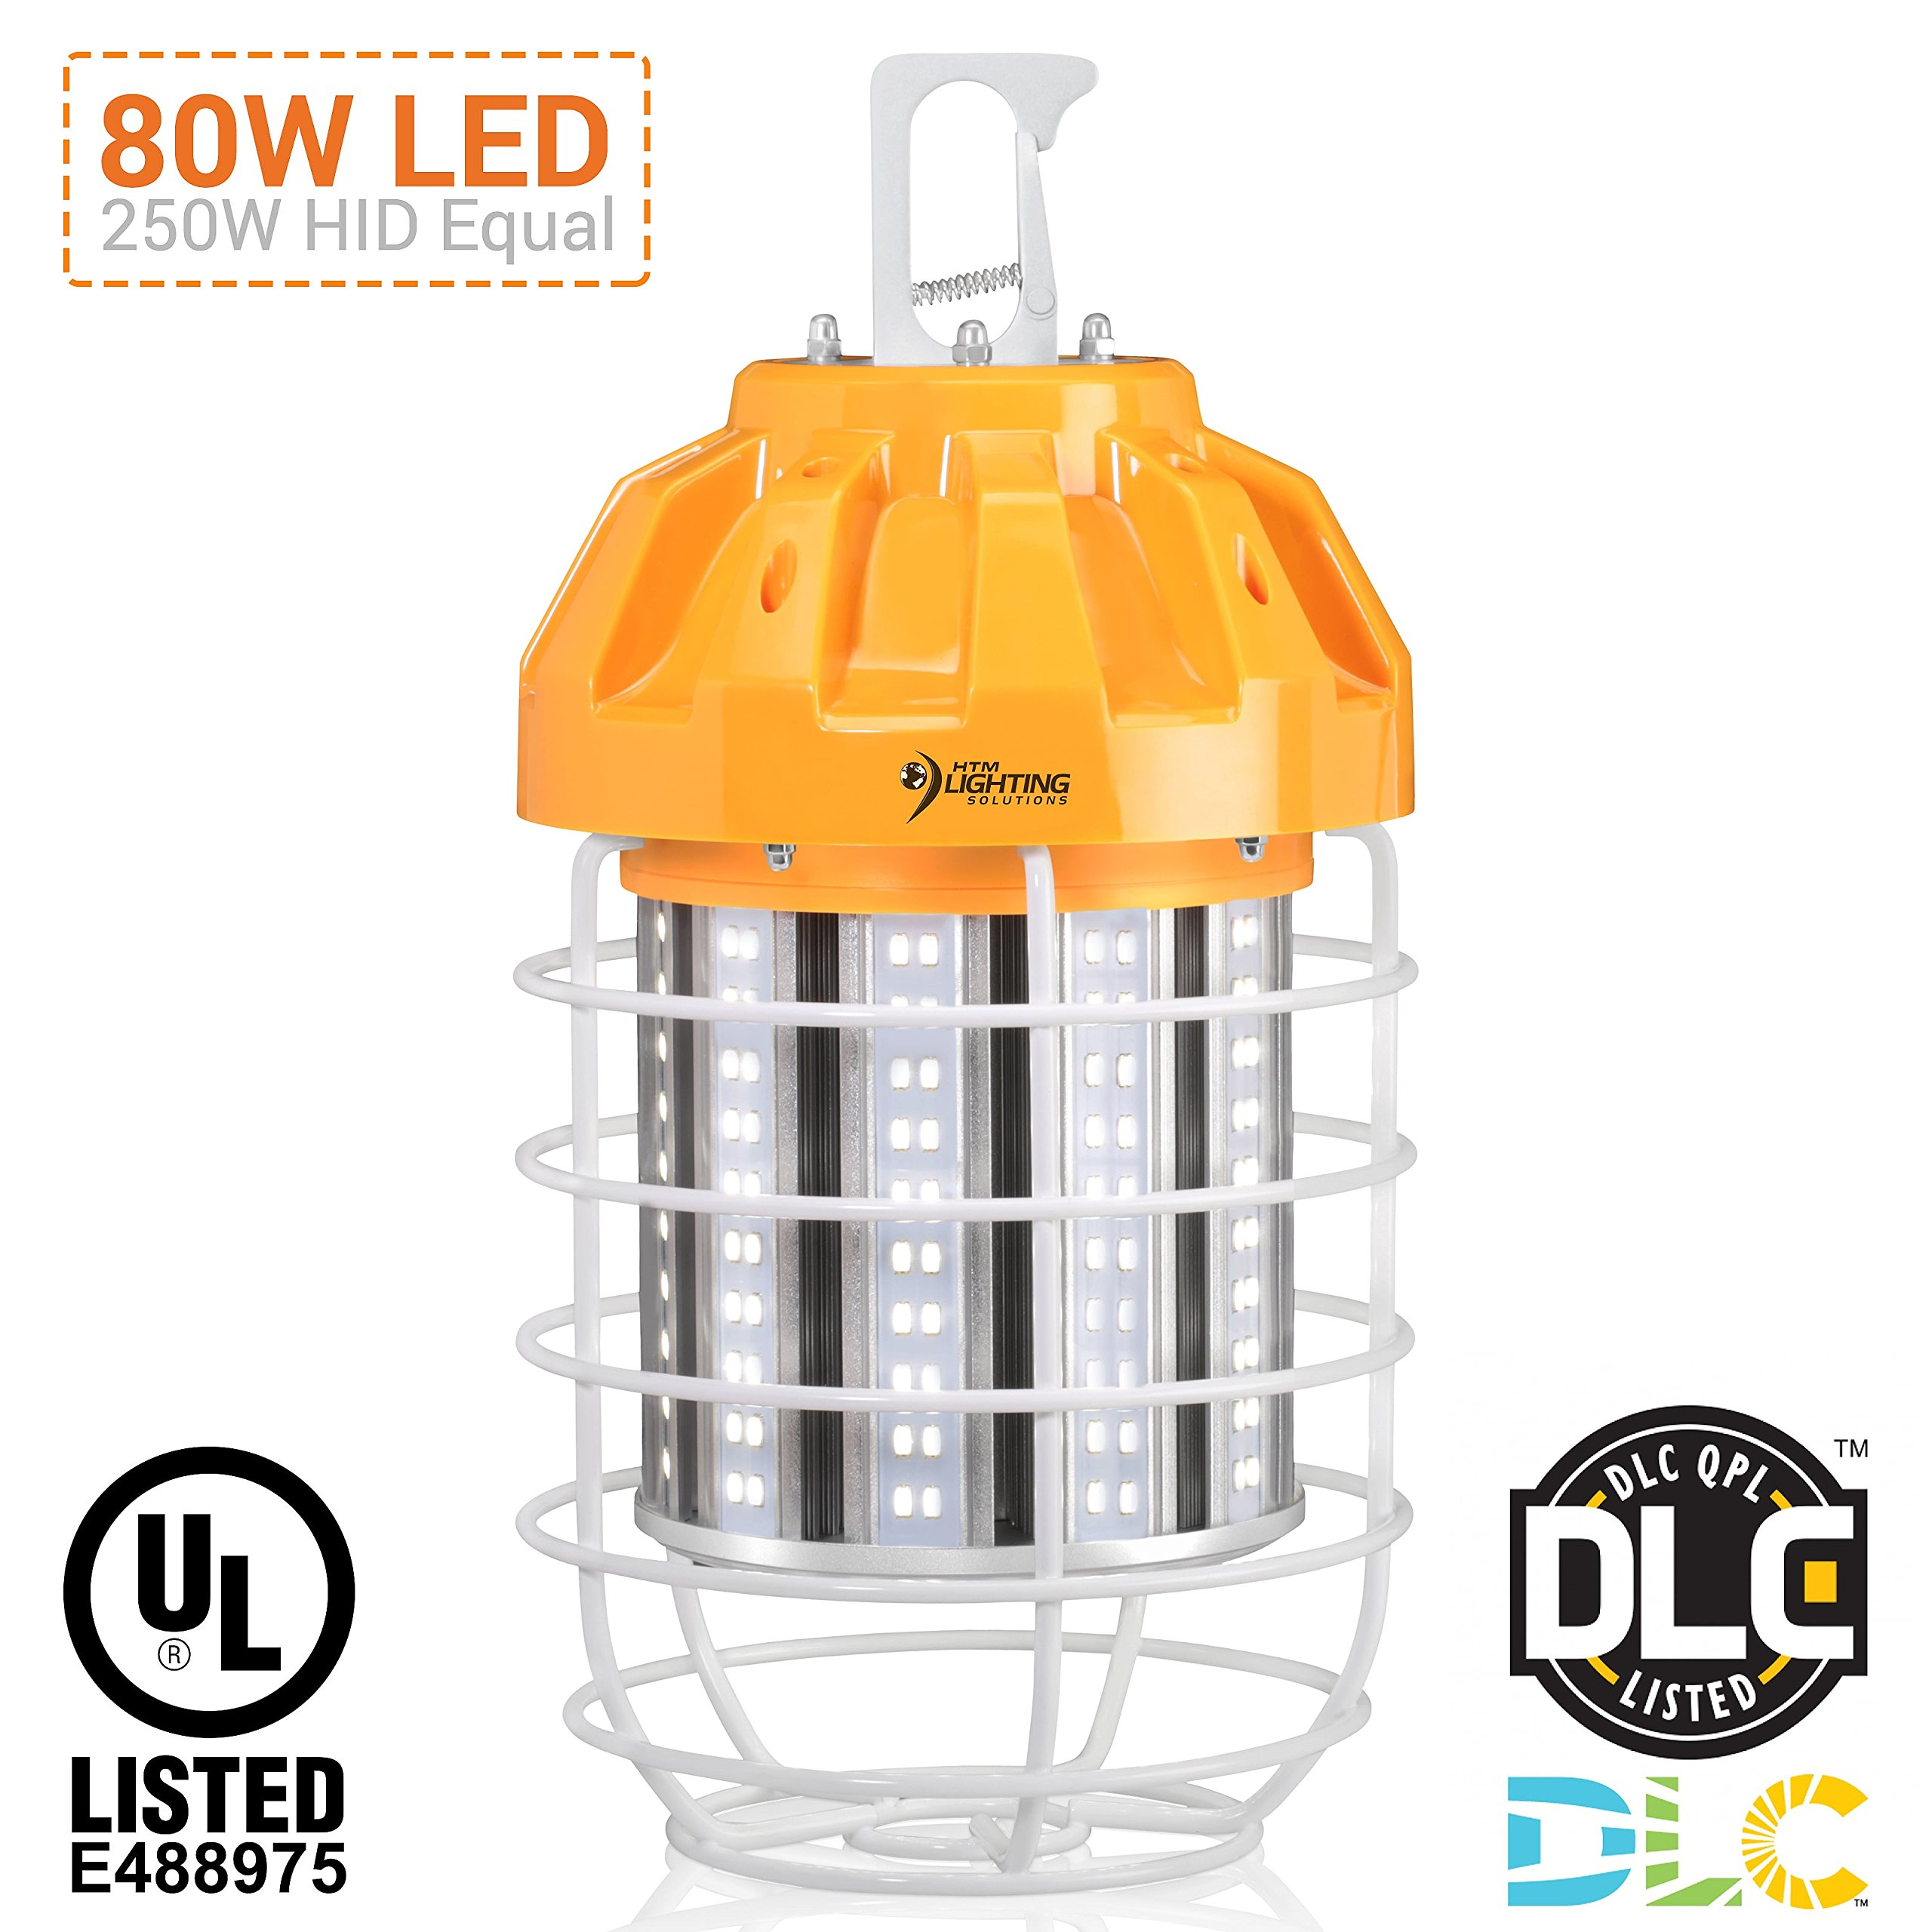 80W LED Drop Light For 250-300W HID/HPS/MH Replacement, 10070 Lumens, Spring Loaded Safety Latch, High Bay Lighting, Wire Guard, US Plug, 100-277VAC Rated, UL Listed & DLC Qualified (5000K Cool White)